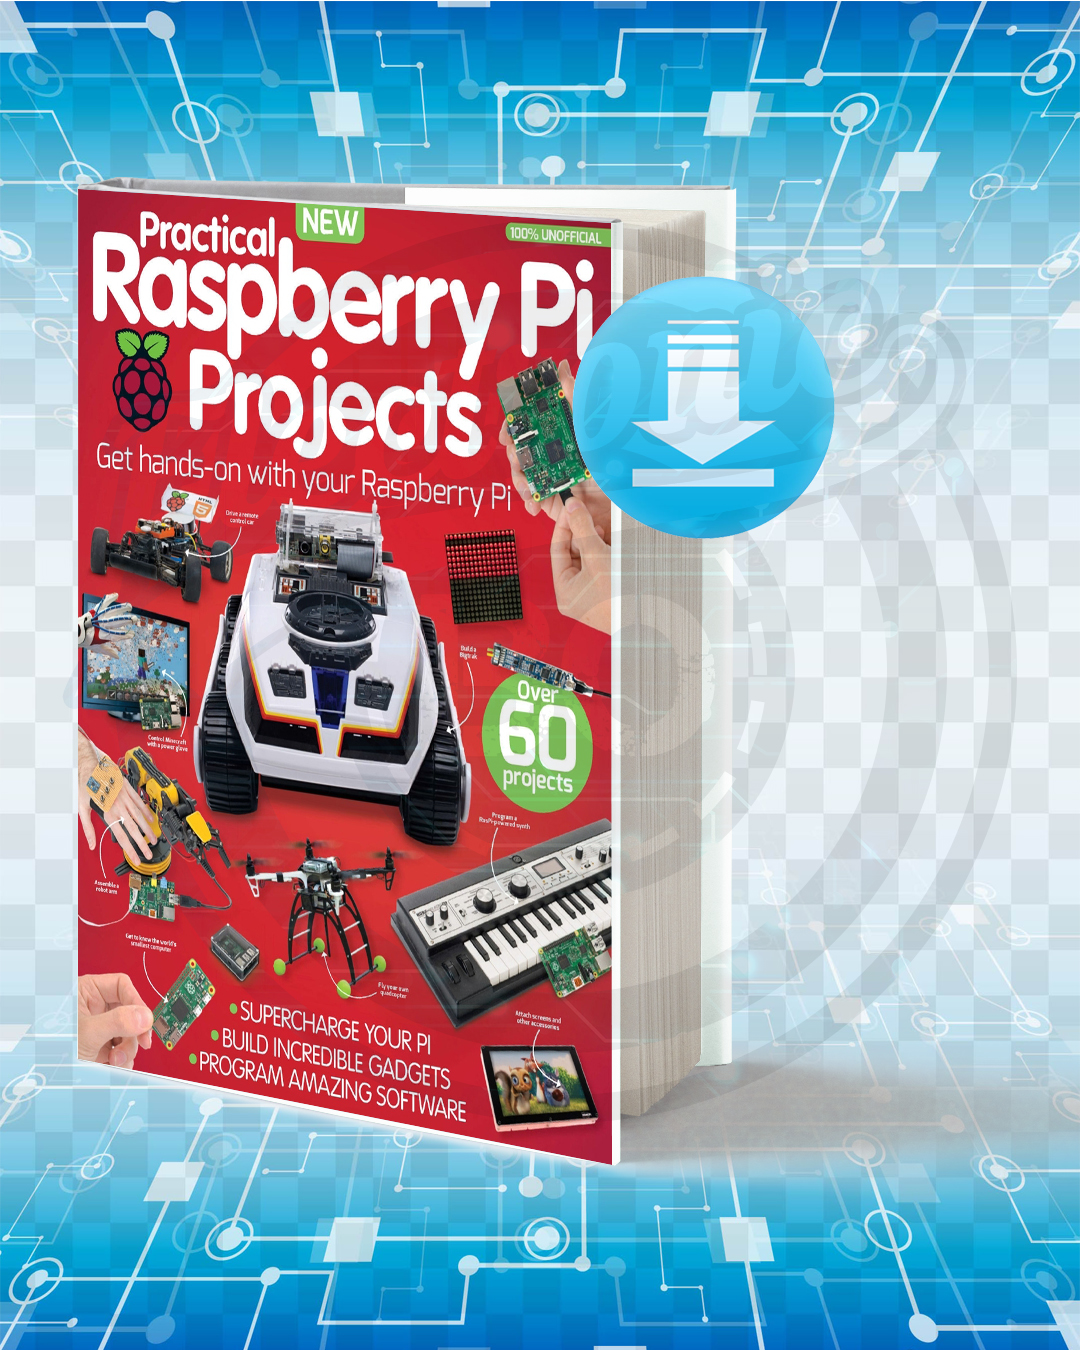 Free Book Practical Raspberry Pi Projects pdf.